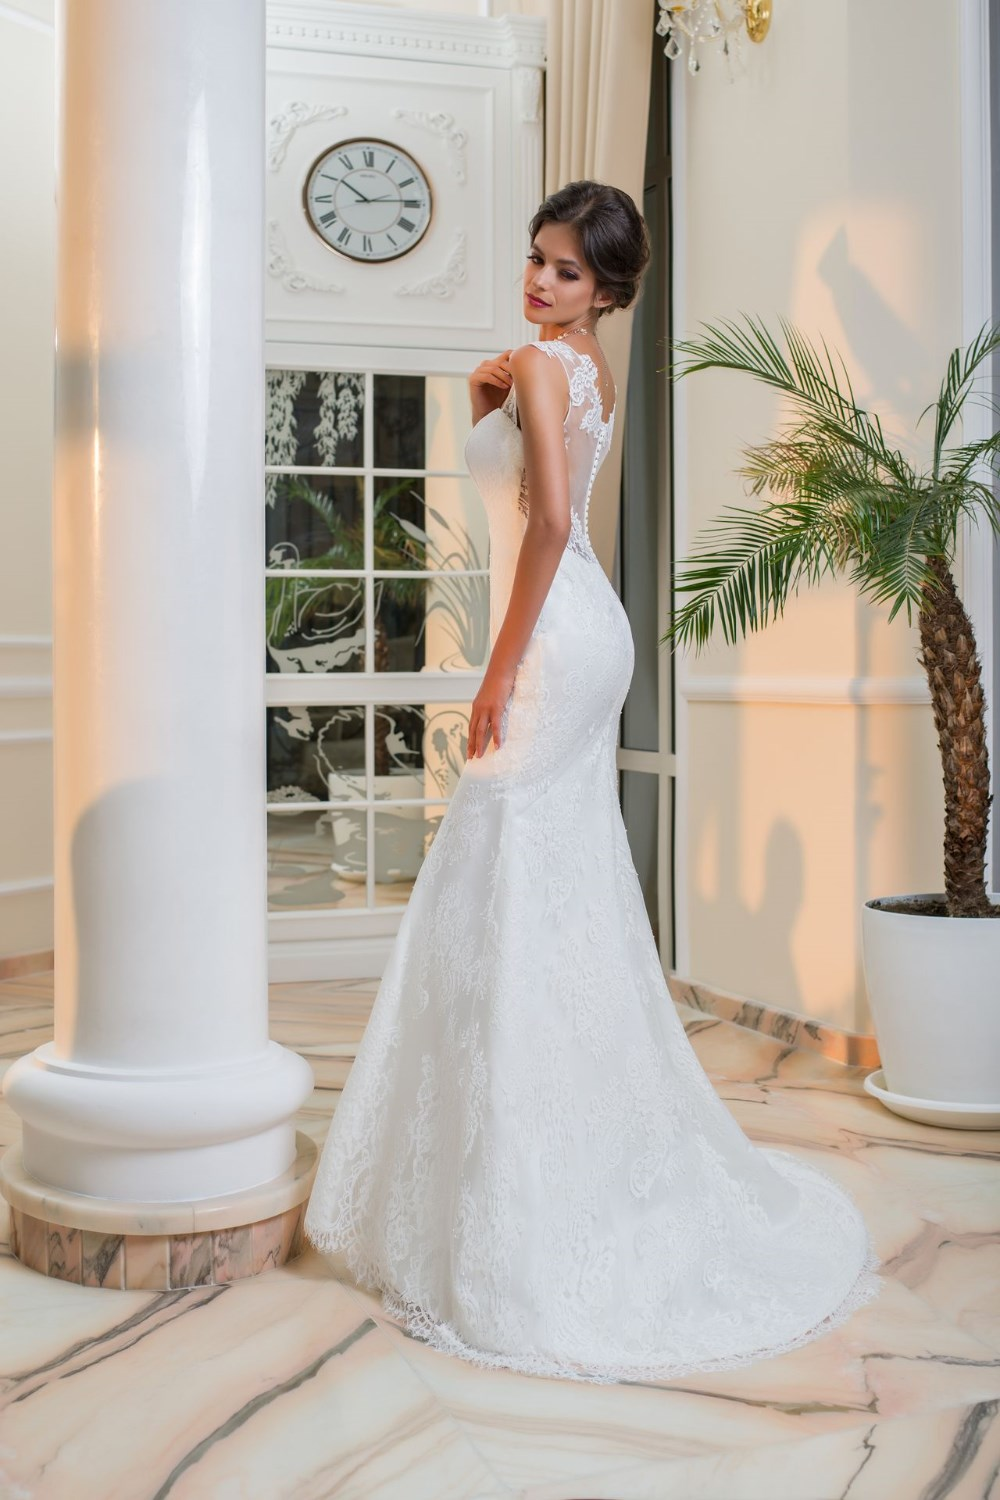 Stunning Mermaid Bridal Dress Adele With French Lace And Applique Work